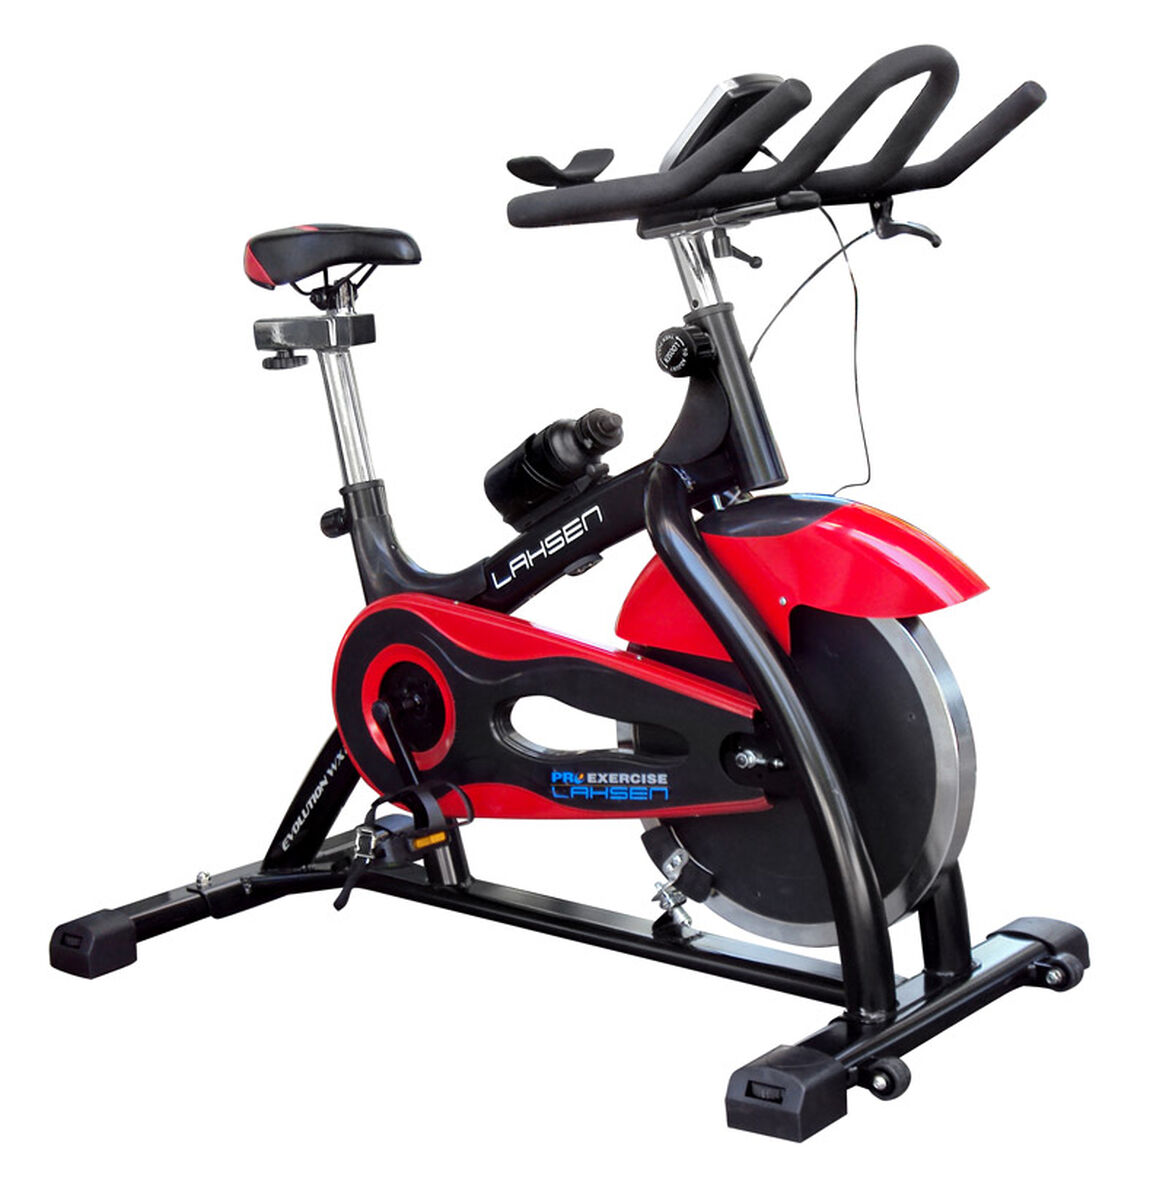 Bicicleta Spinning Lahsen Evolution WX-207